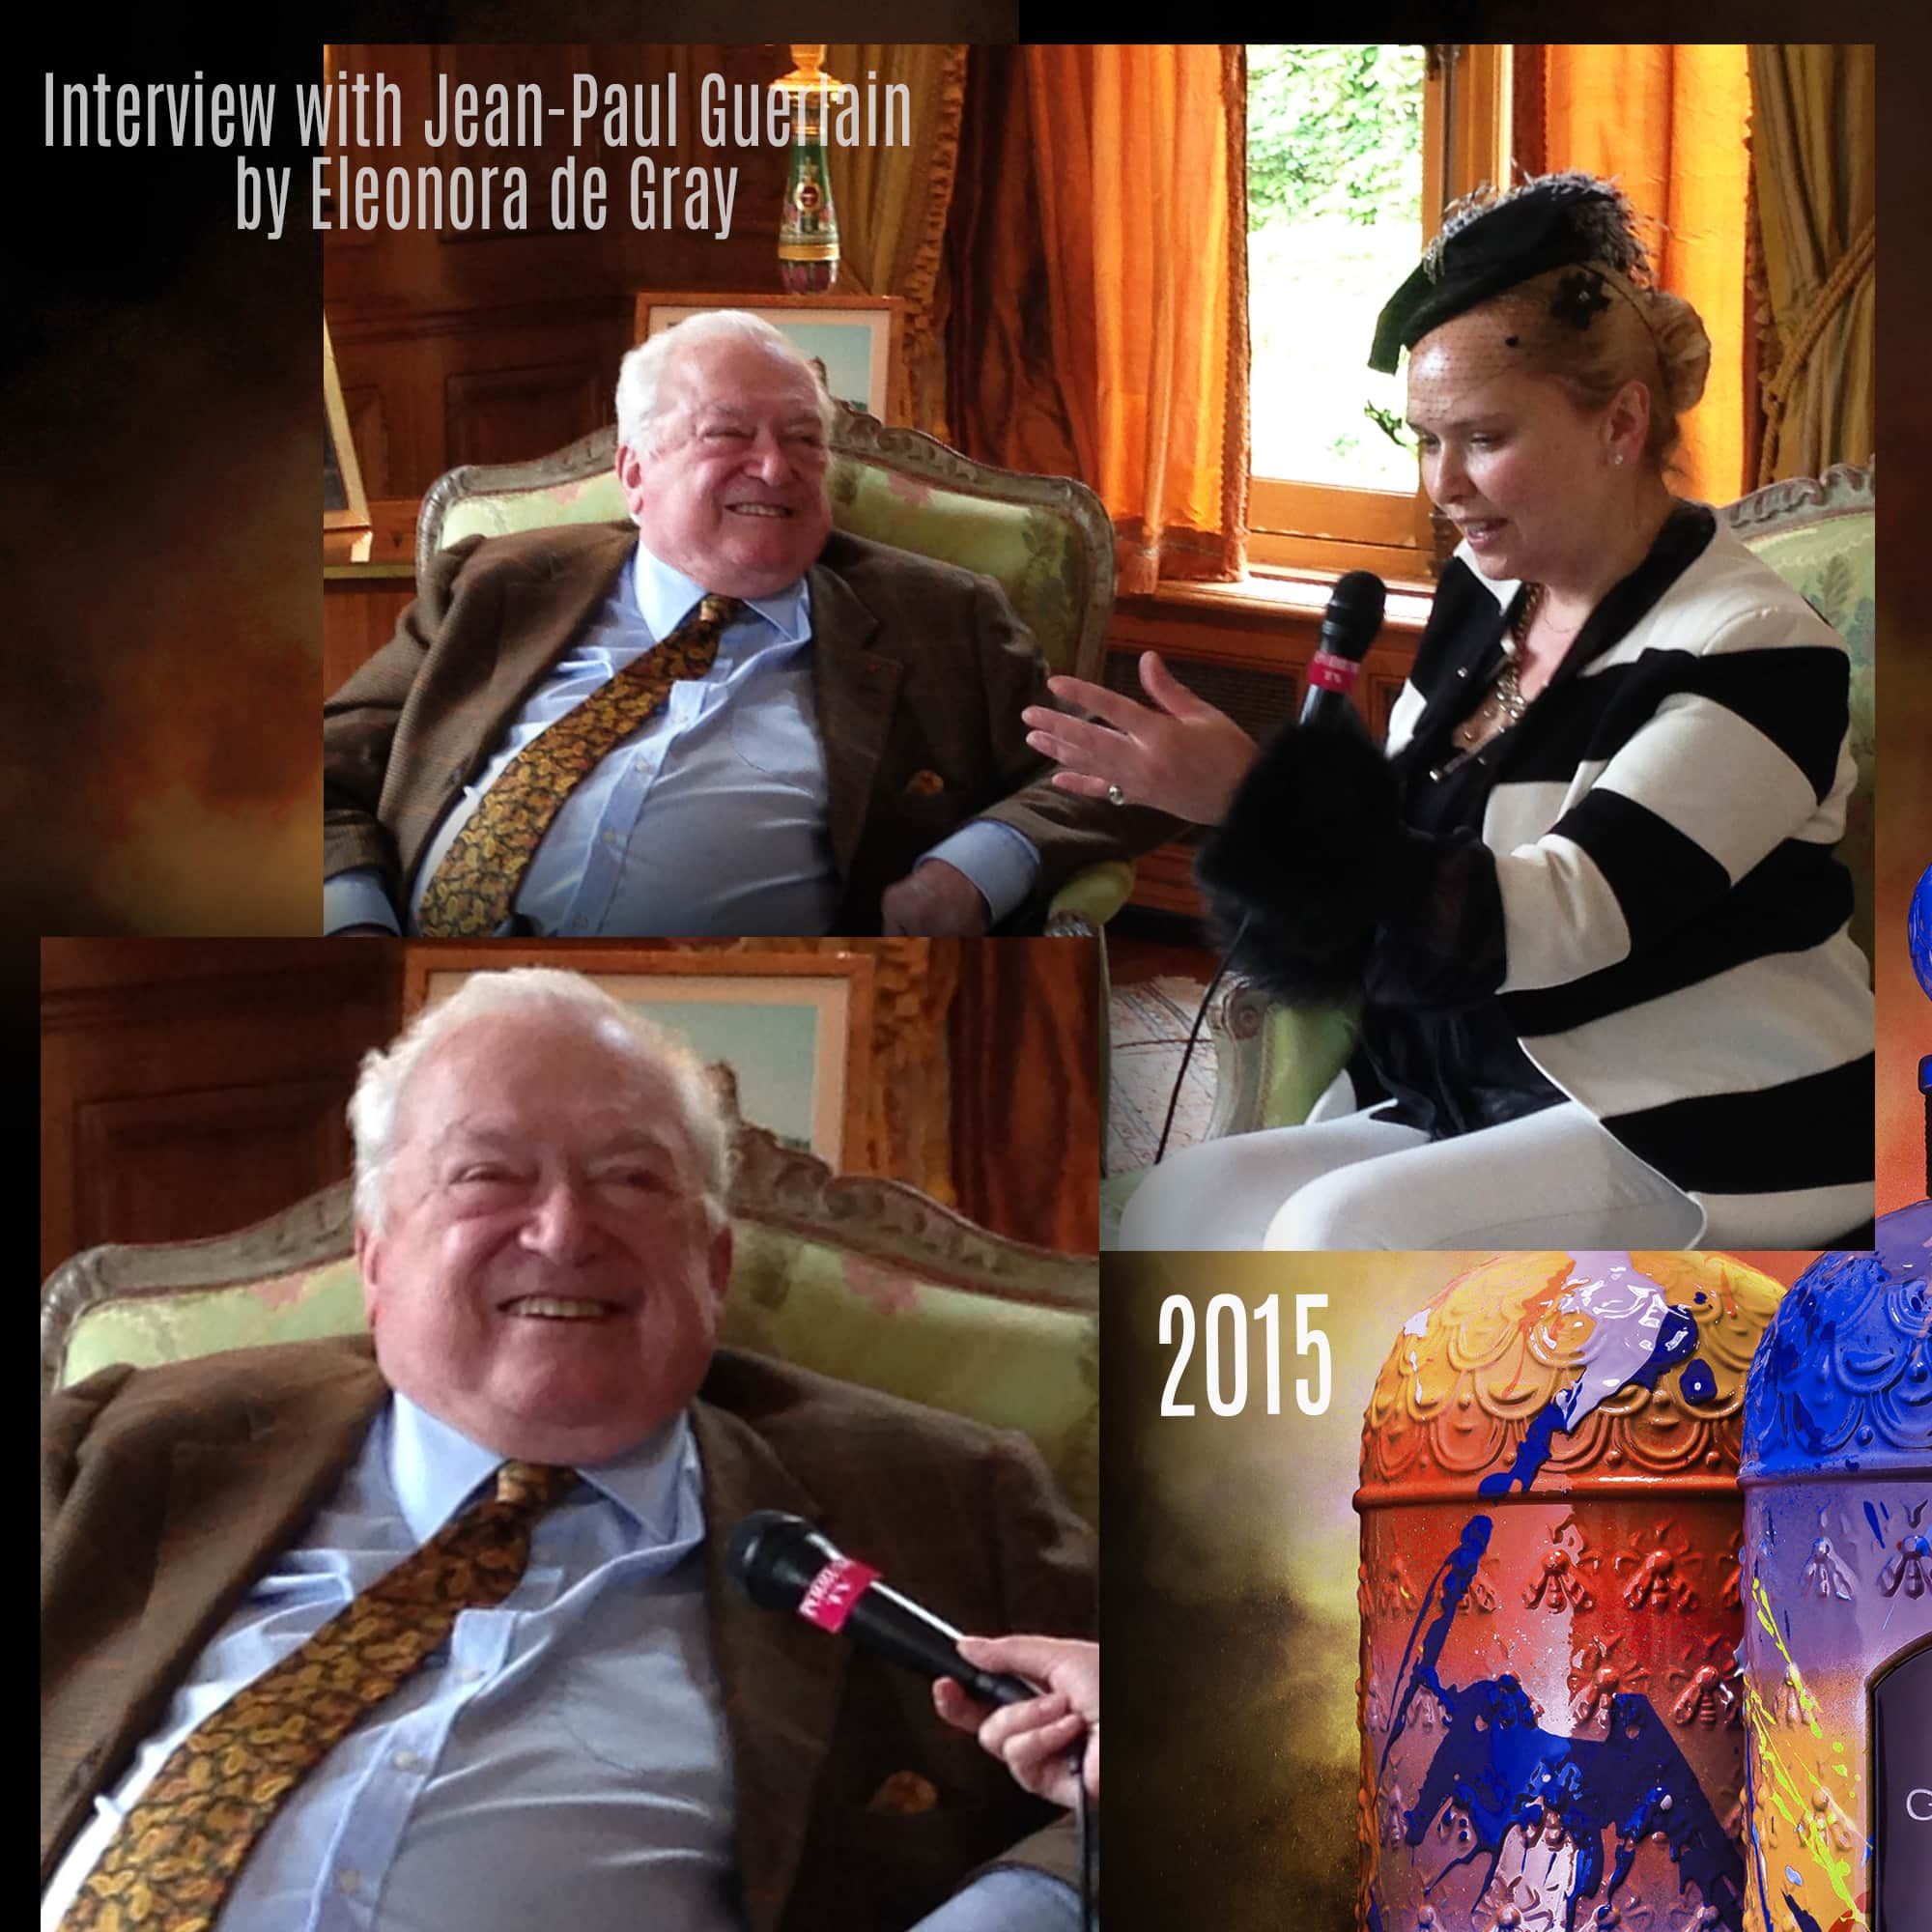 Interview with Jean Paul Guerlain by Eleonora de Gray - 2015 - Tresors INPI by RUNWAY MAGAZINE